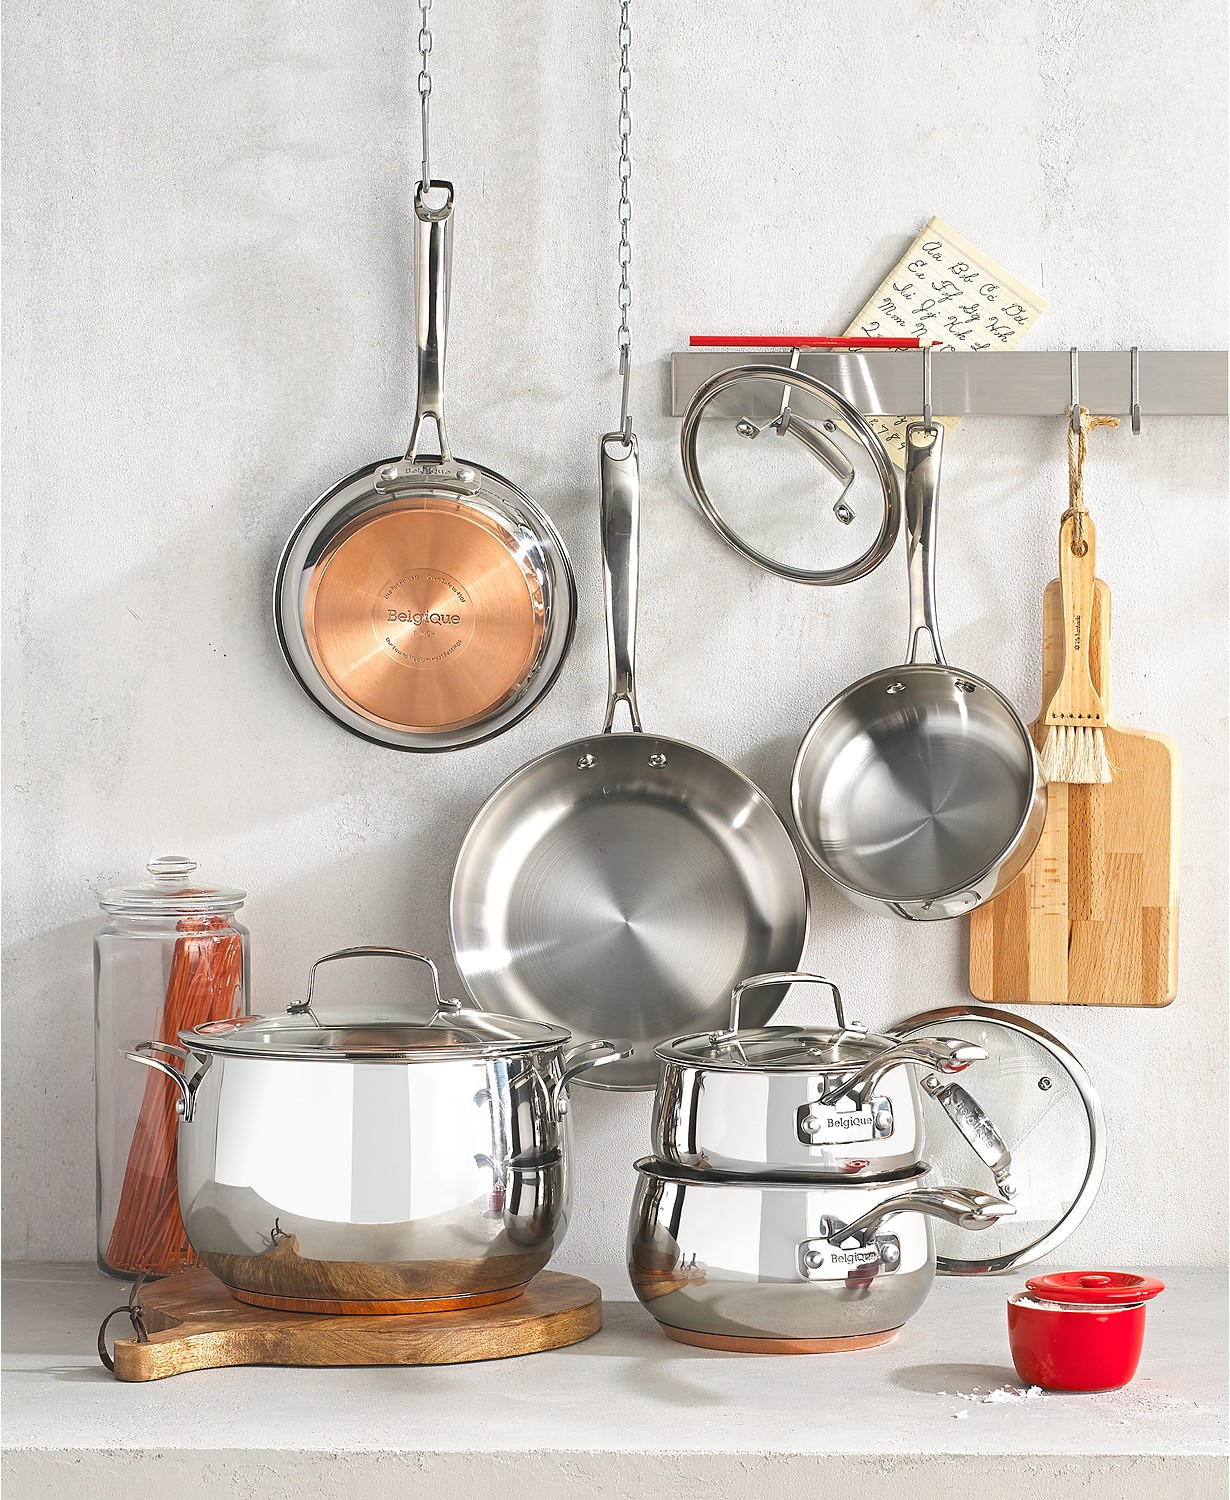 Belgique Cookware Review The 5 Best Sets You Need To See